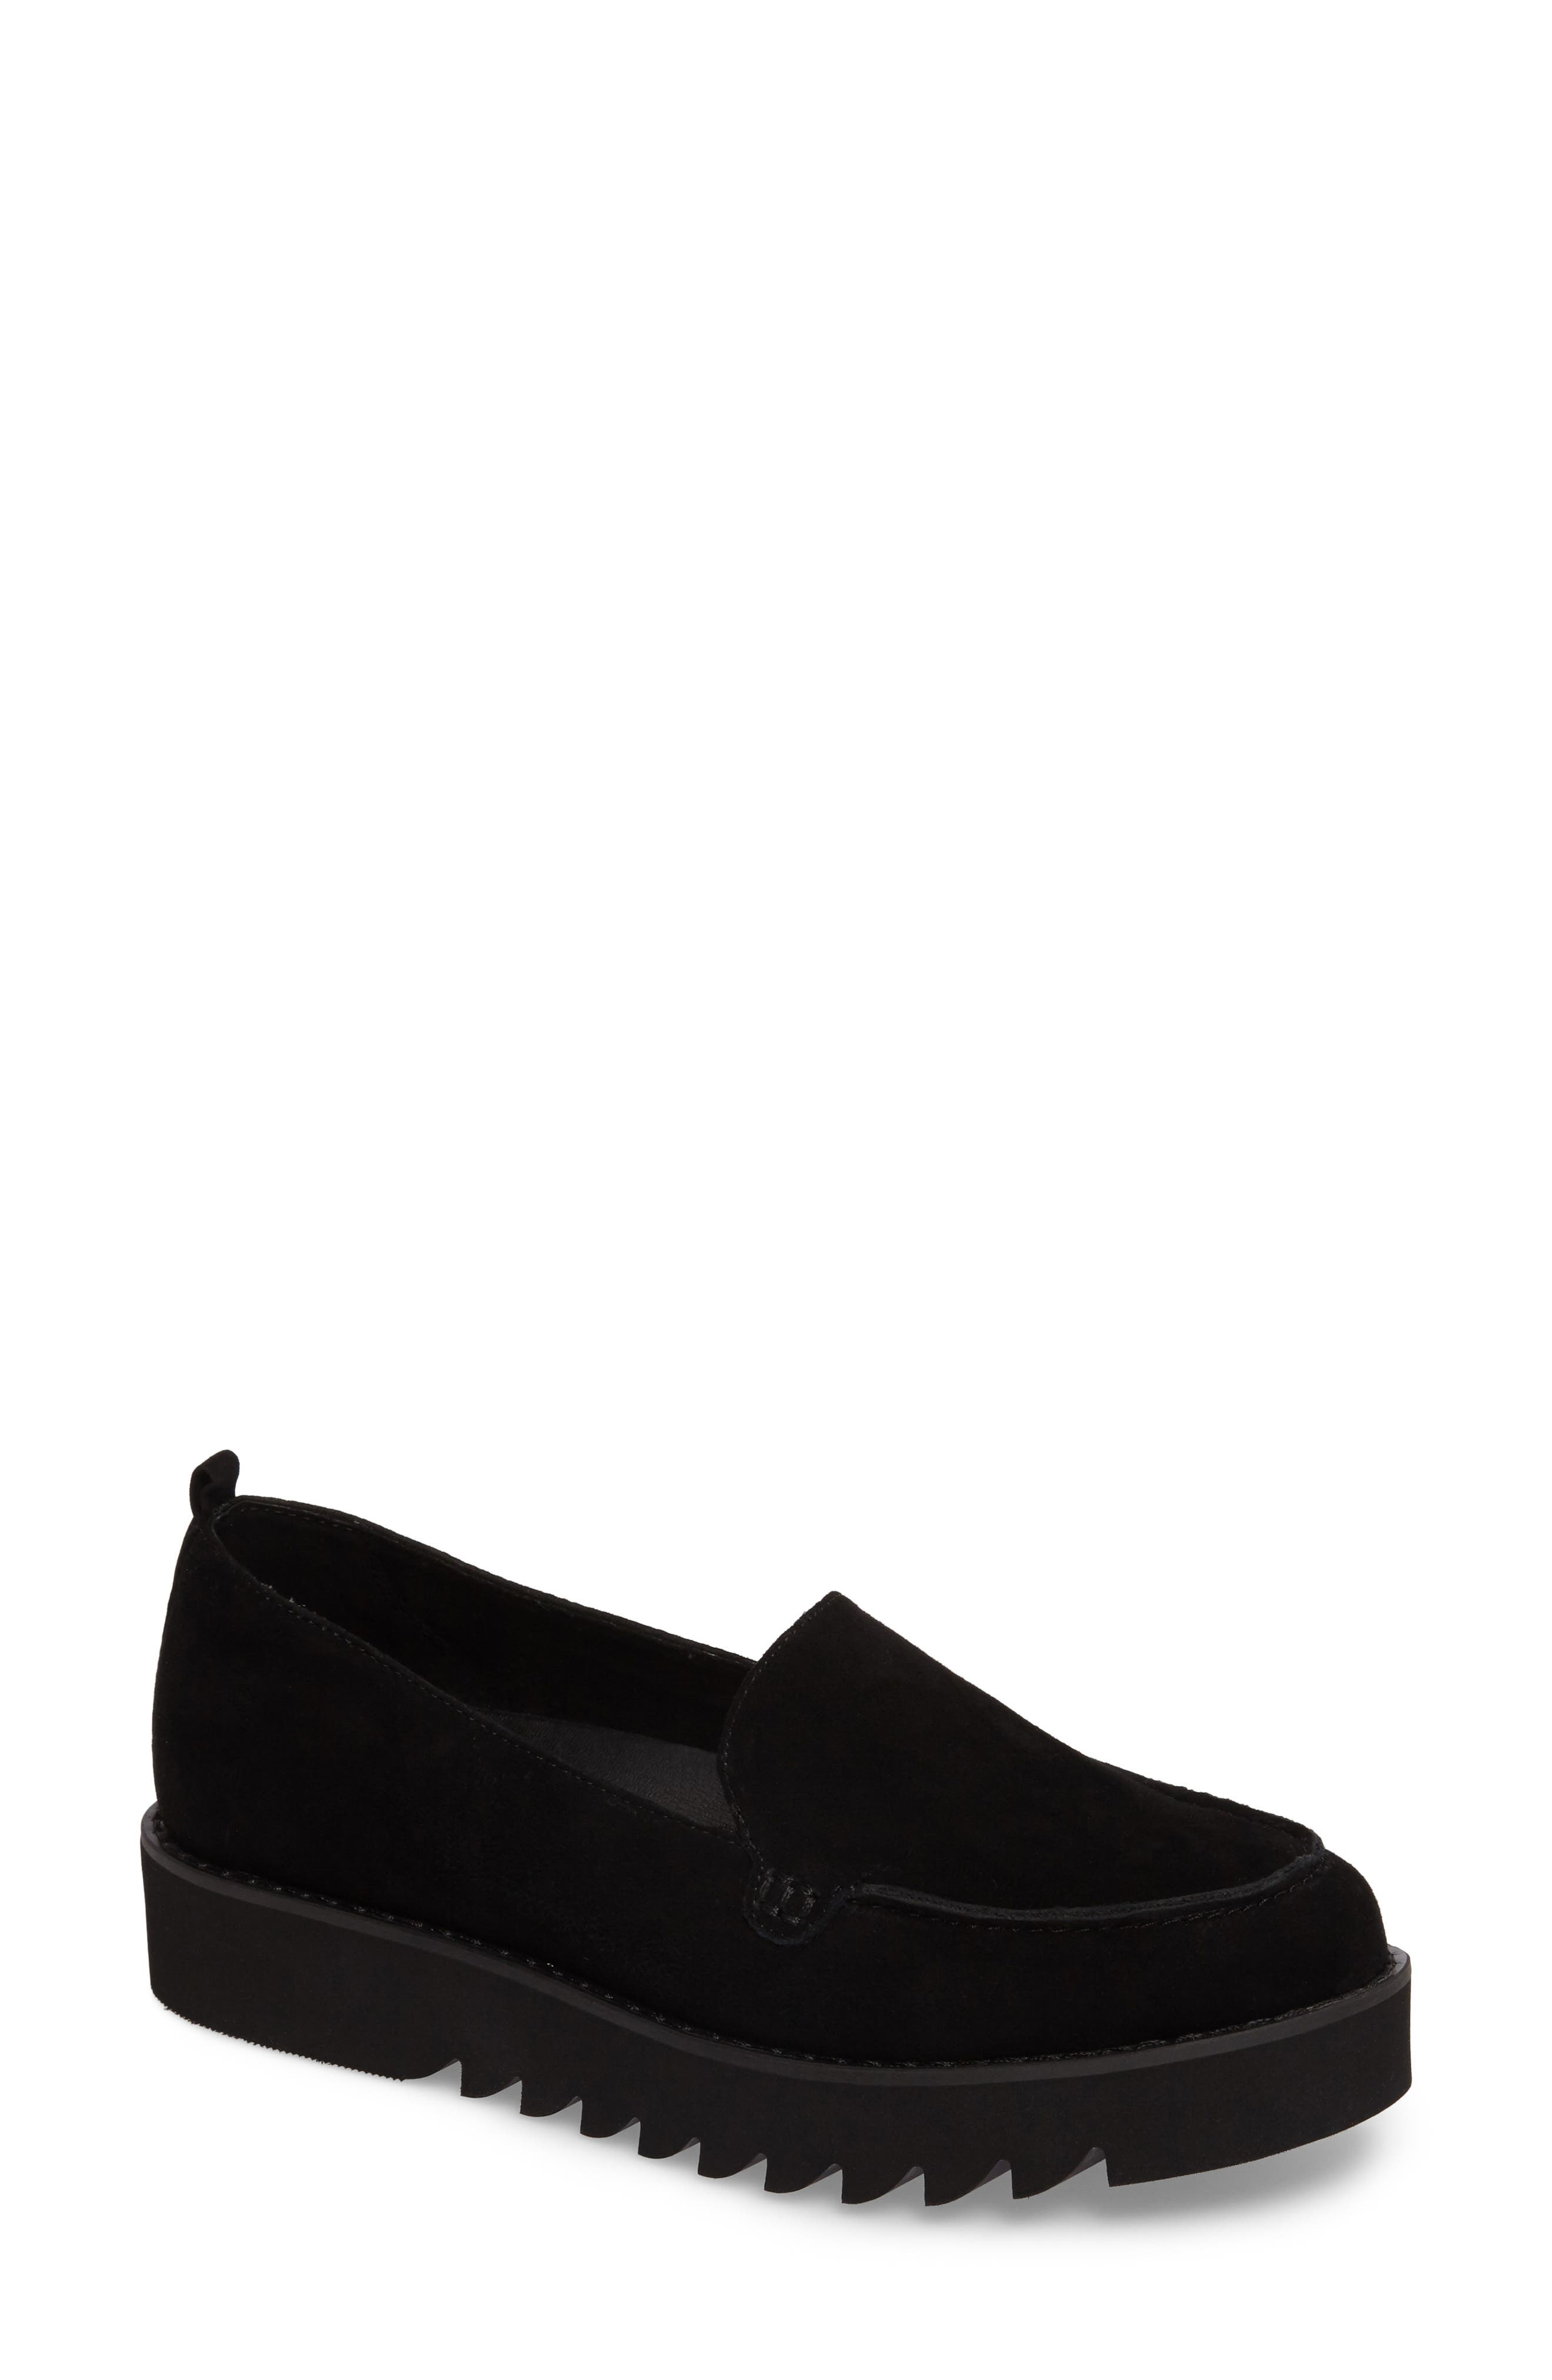 Alternate Image 1 Selected - Sudini Kendall Loafer (Women)